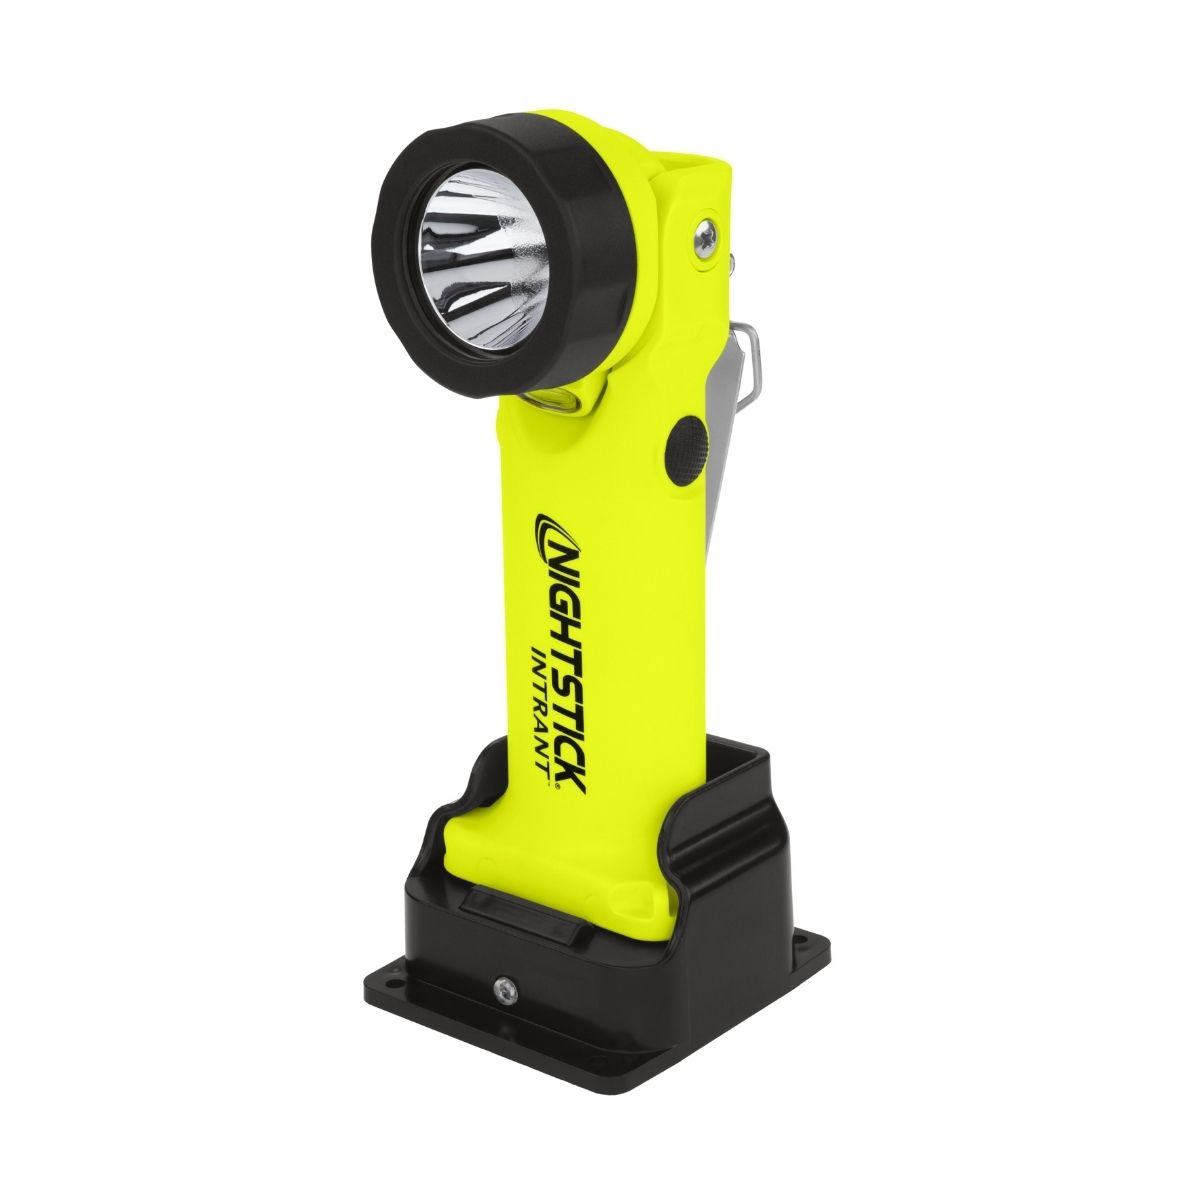 PL0012 Nightstick Intrinsically Safe Rechargeable Dual-Light Angle Light